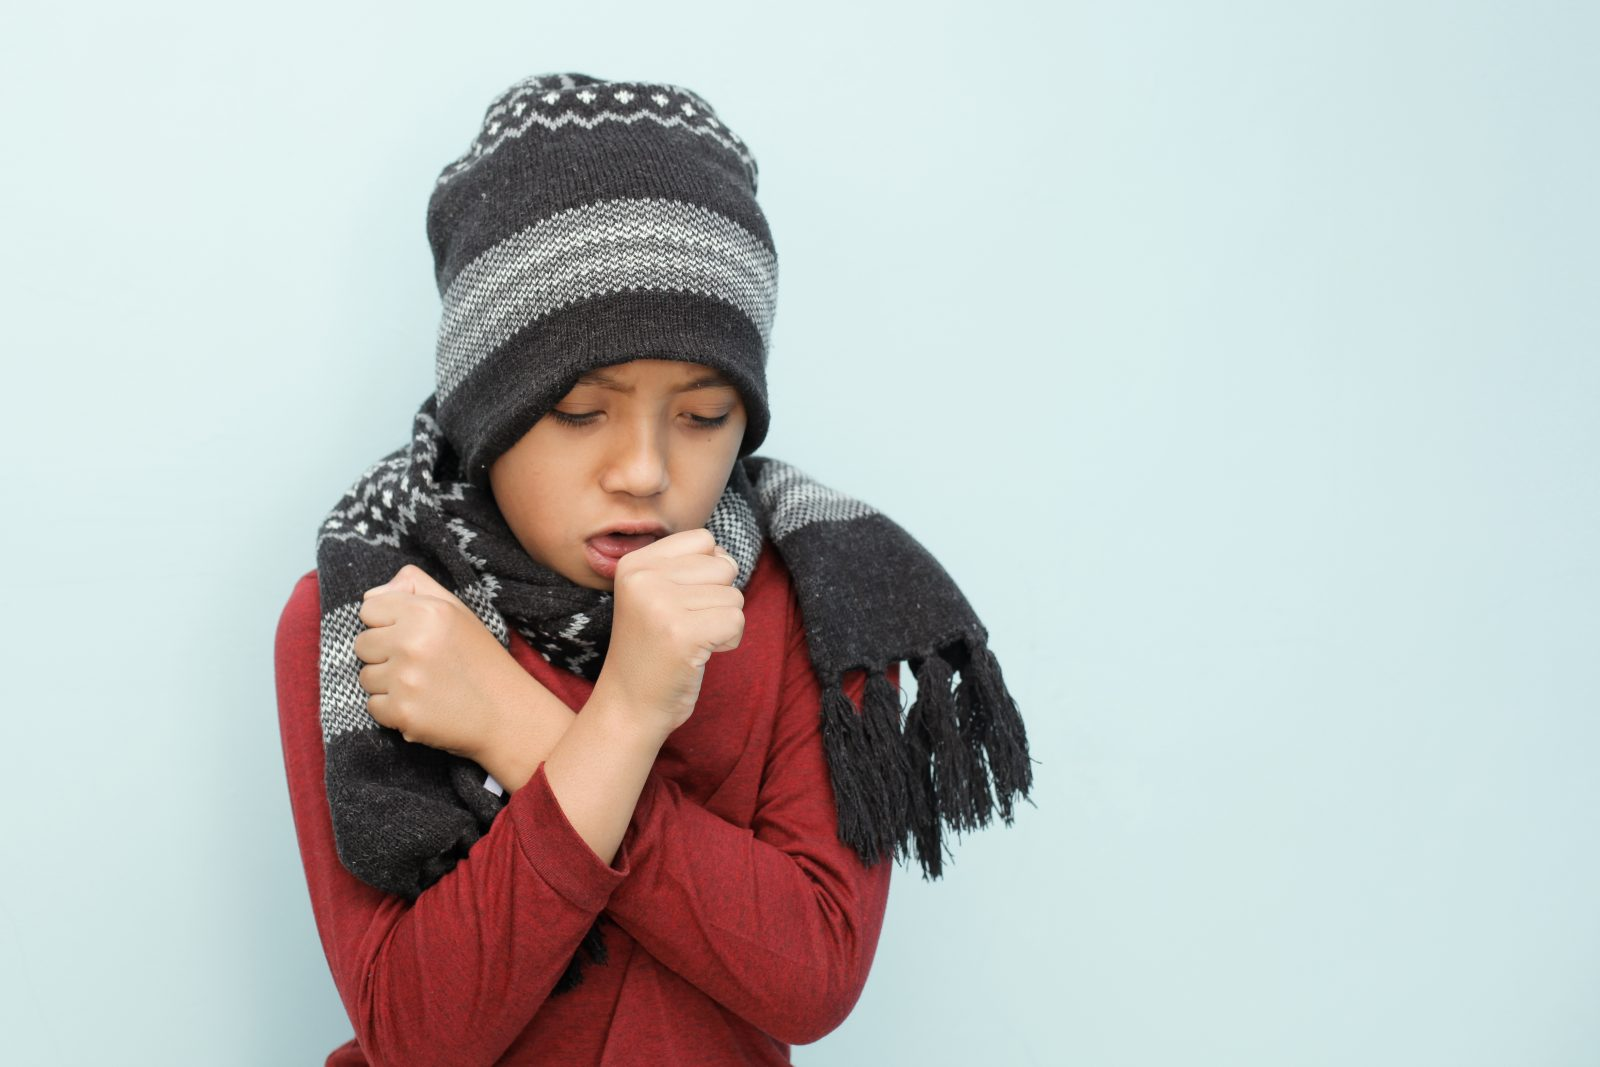 Cough in Children – How to Prevent Cough